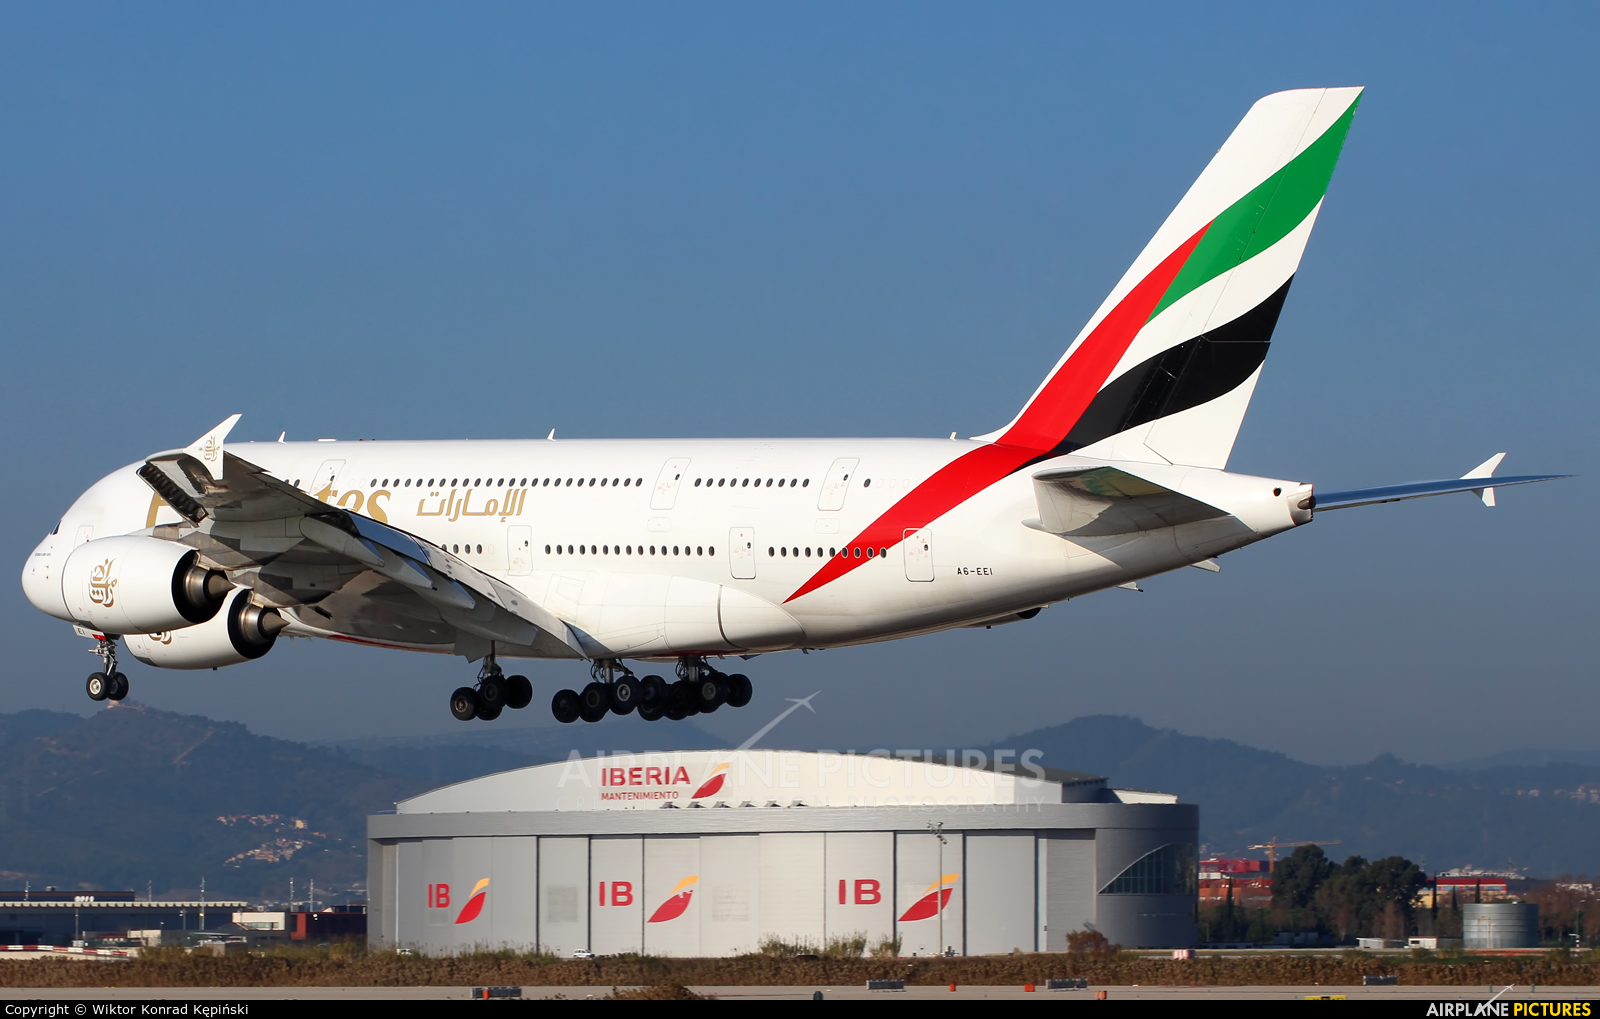 Emirates Airlines A6-EEI aircraft at Barcelona - El Prat